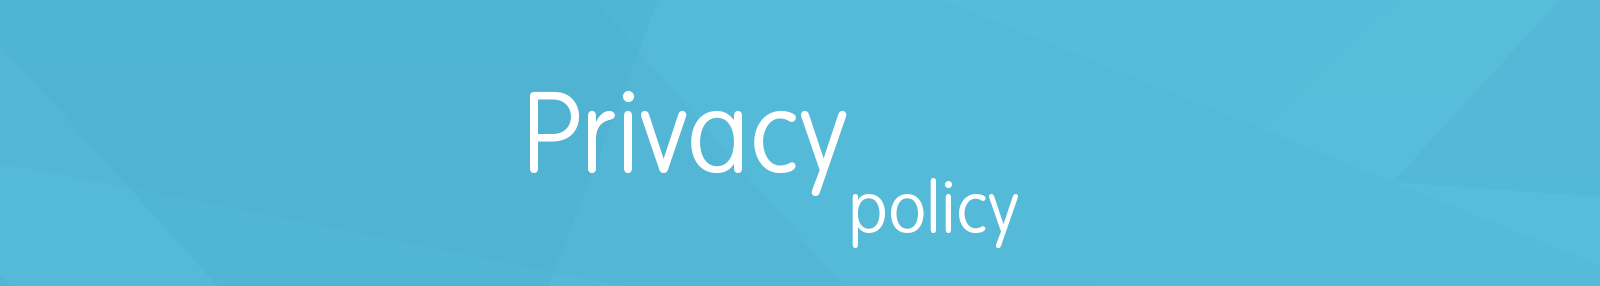 Blue Light Card Privacy Policy